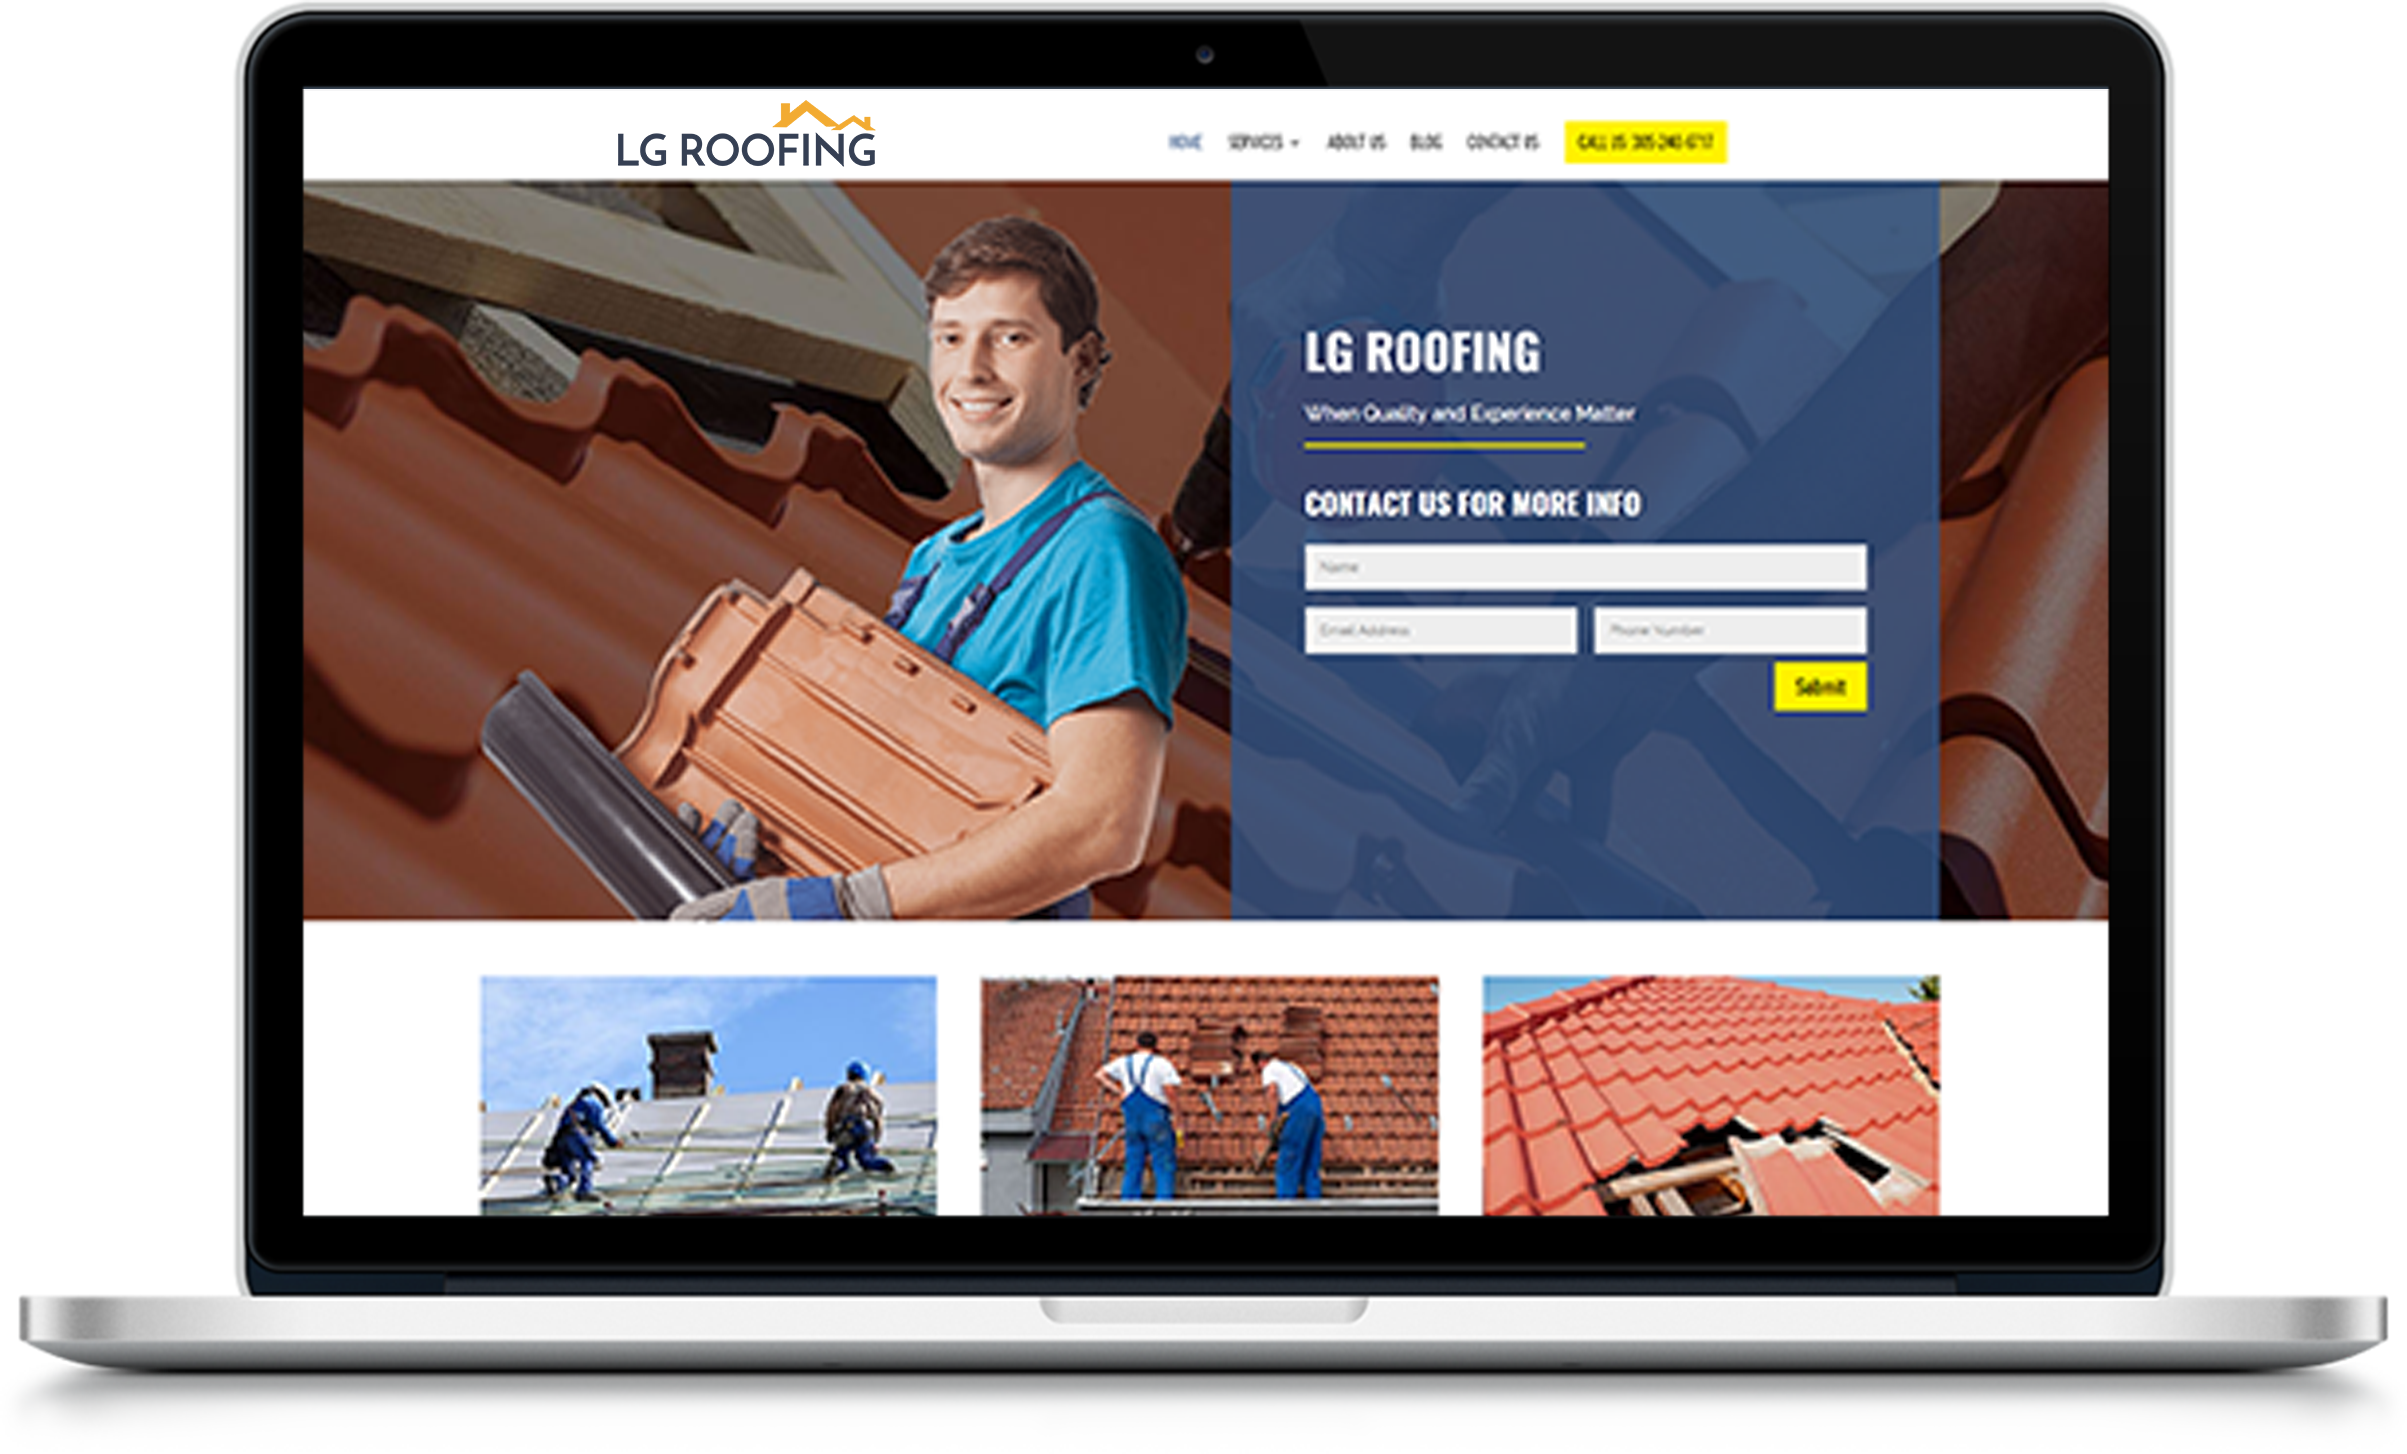 LG Roofing